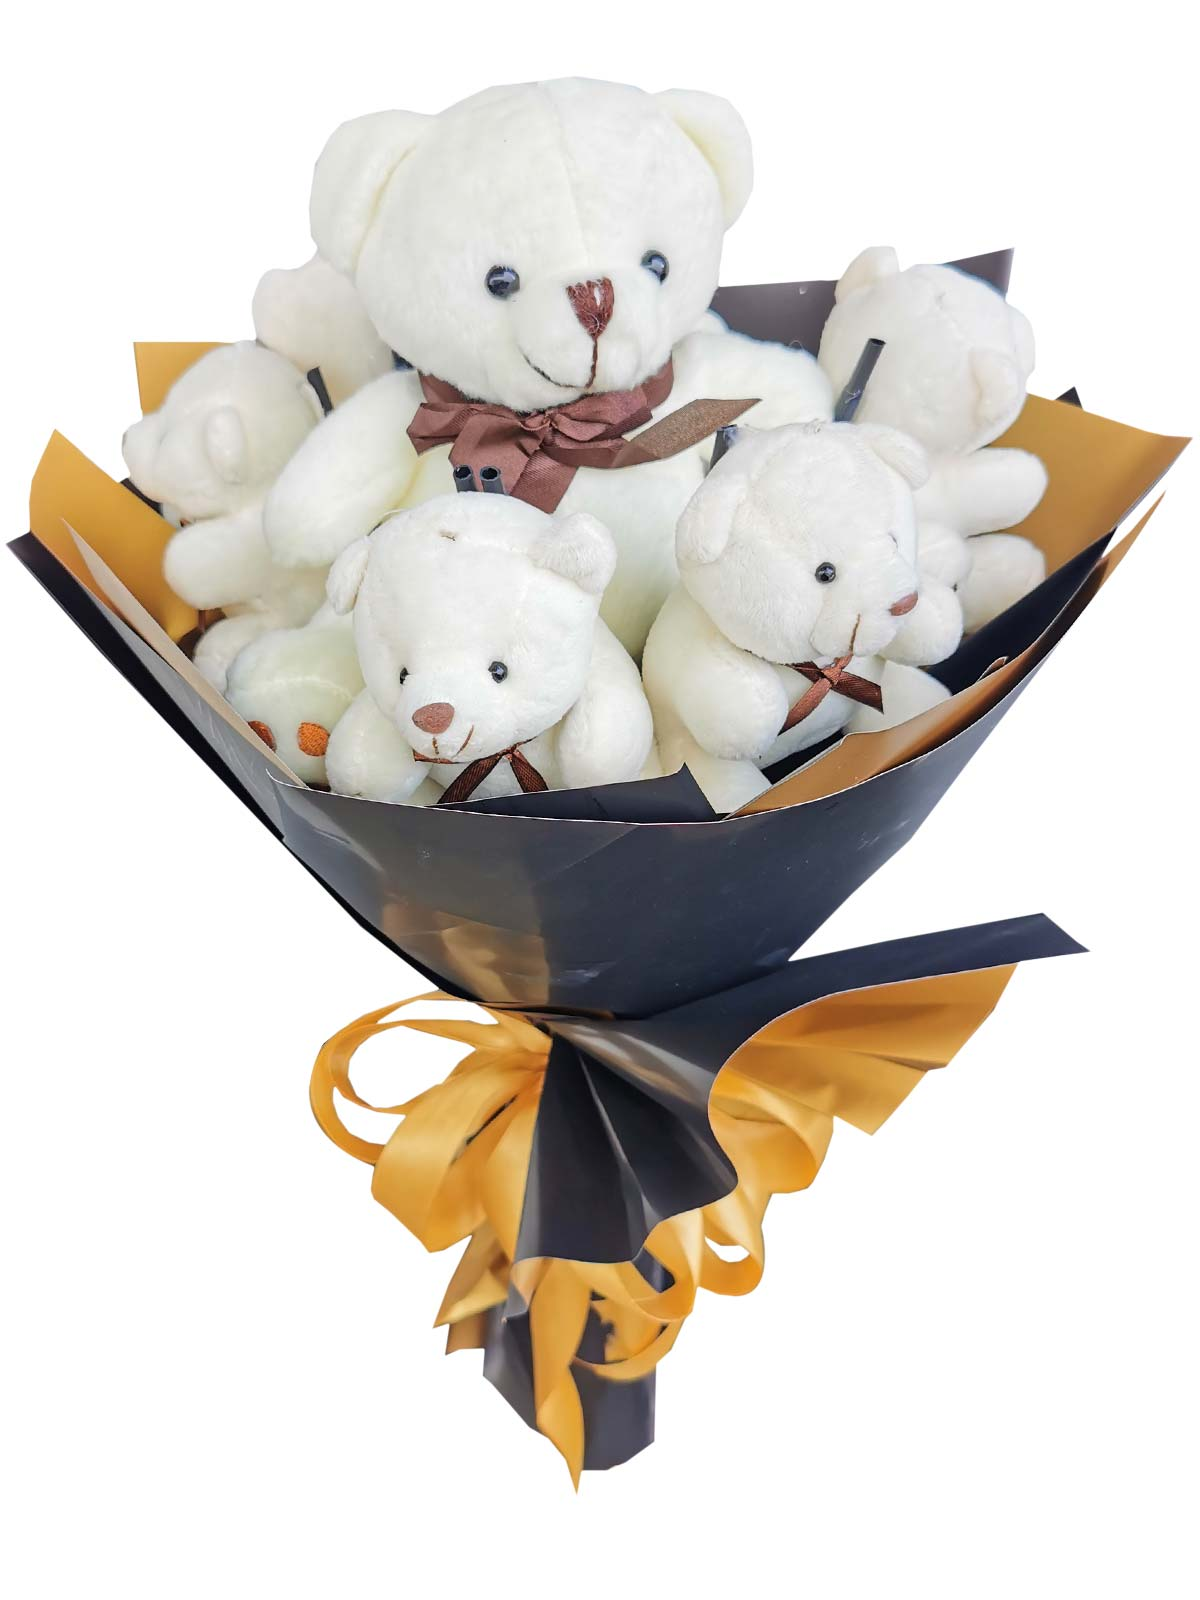 Big White Bear and  6 Small White Teddy Bears;